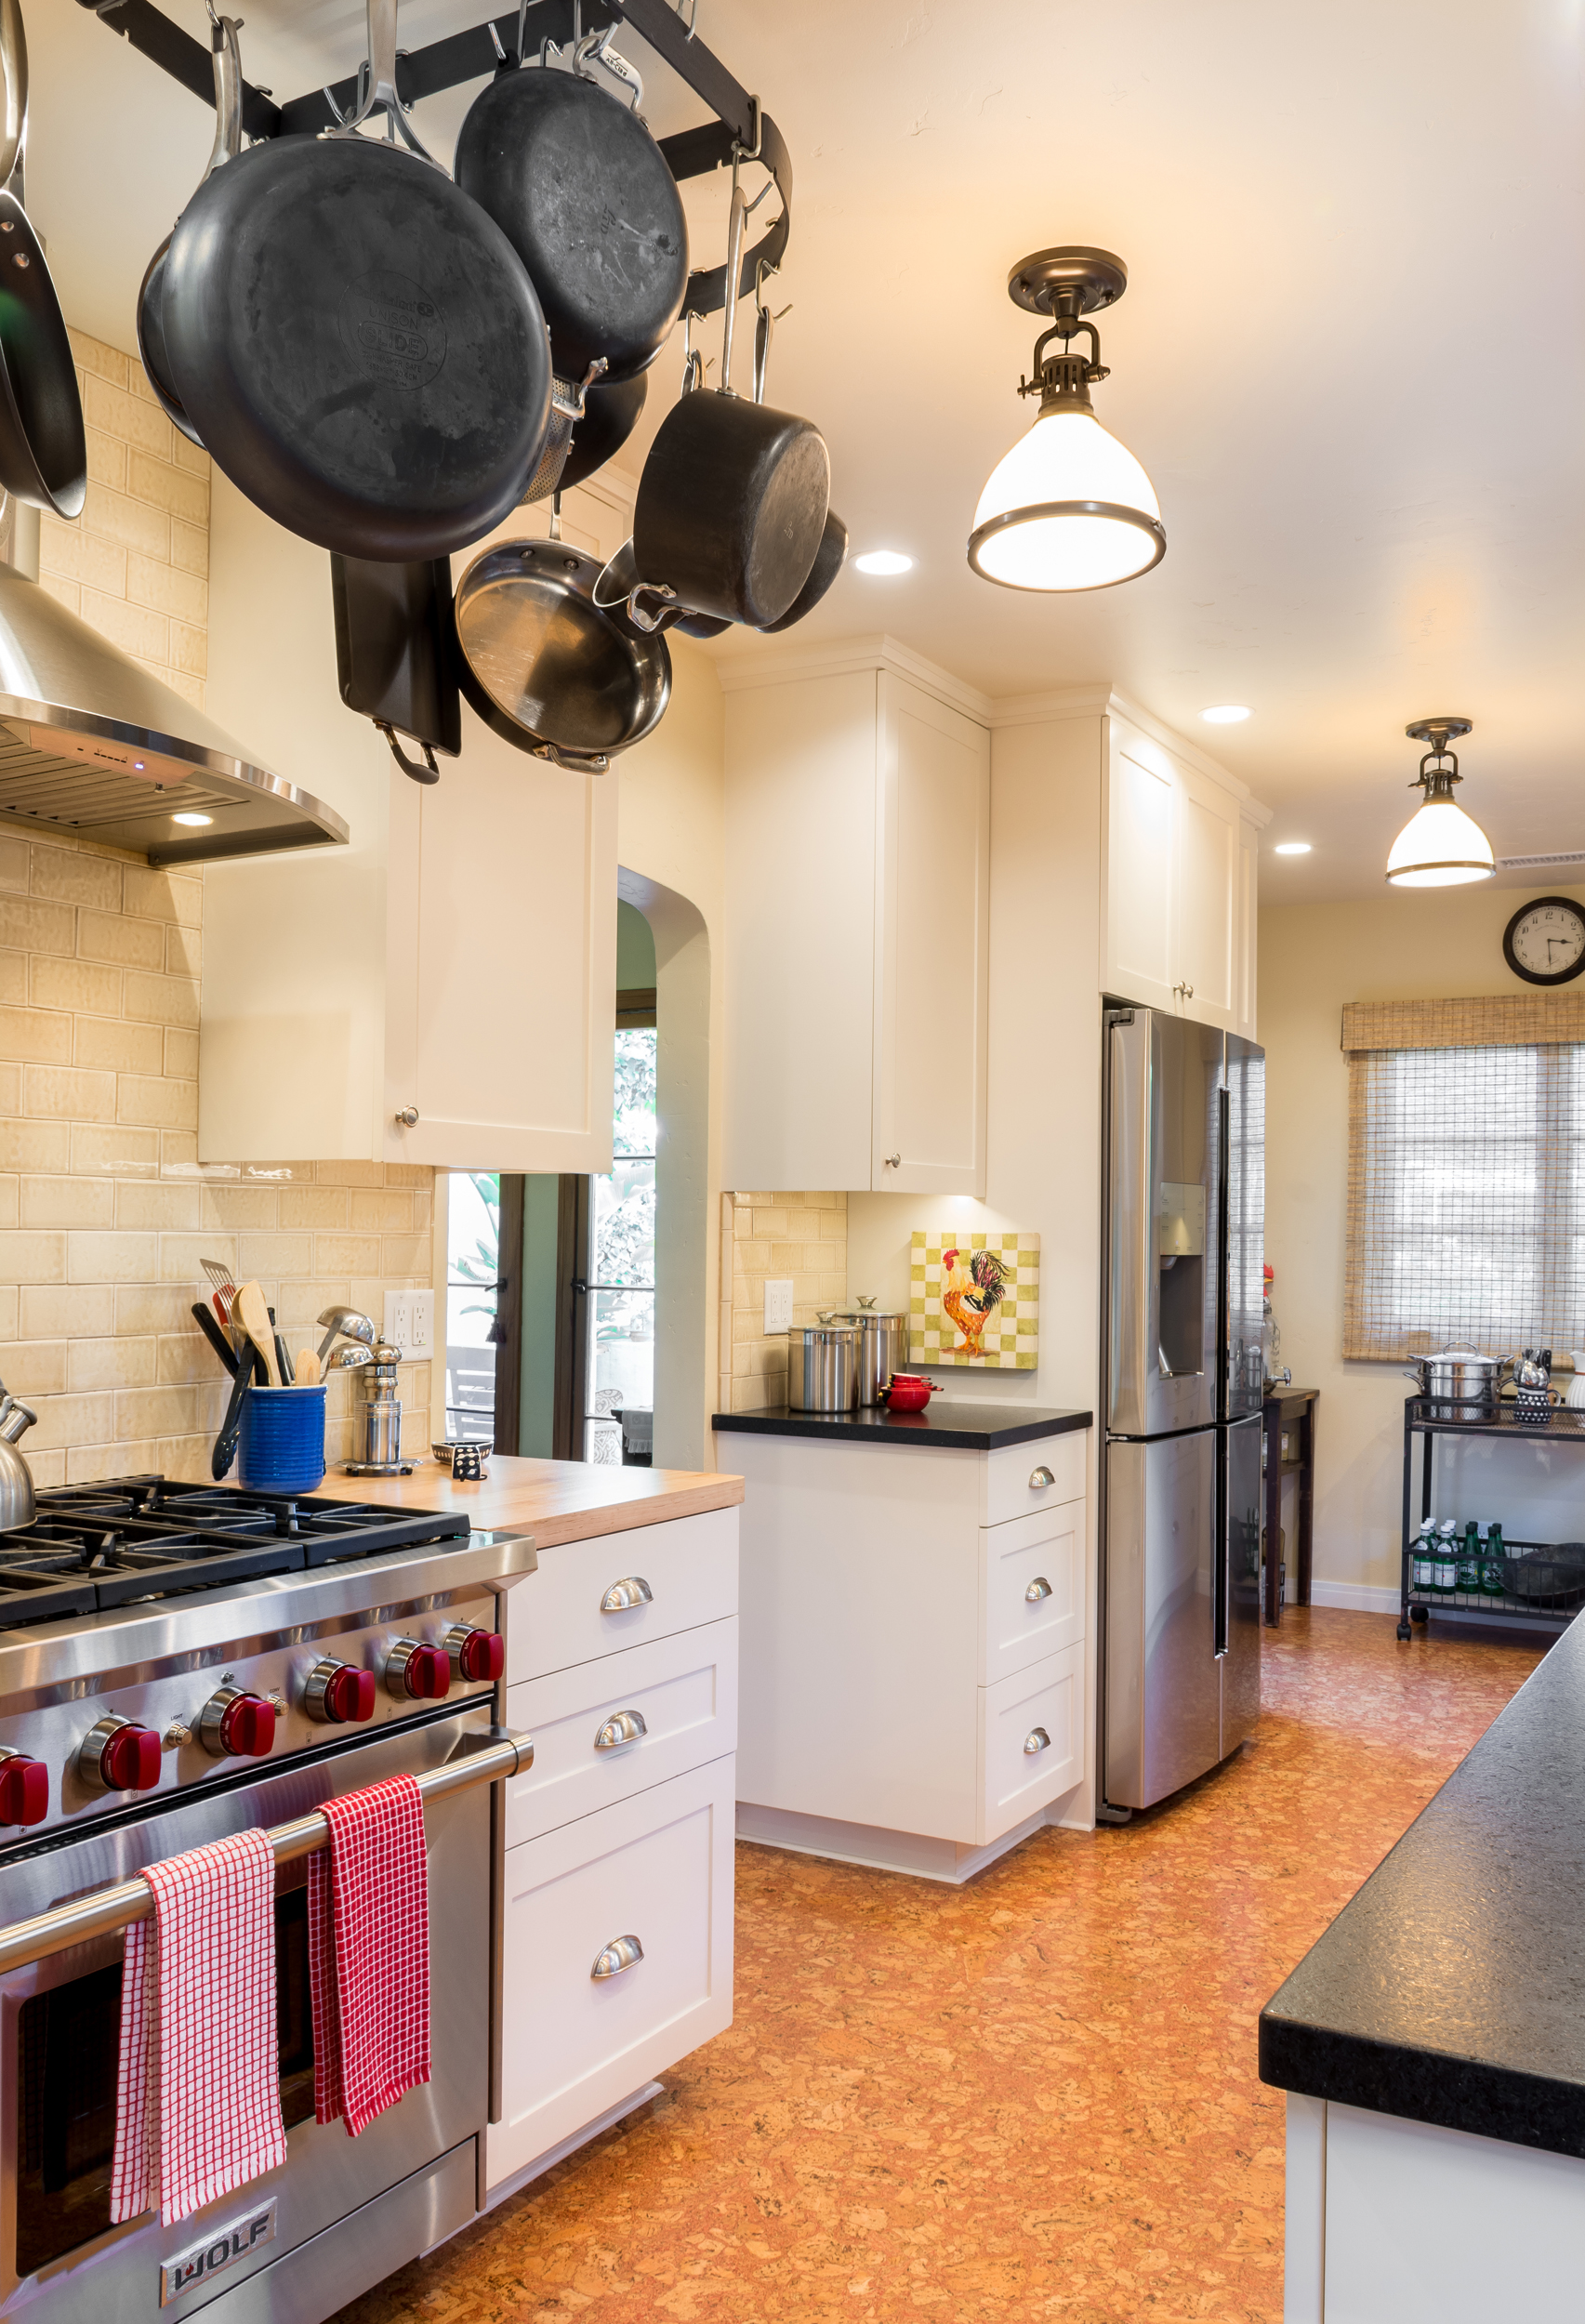 The range is a defining piece for a kitchen and, in this case, the hanging pot rack and accent light fixtures emphasize the old world style